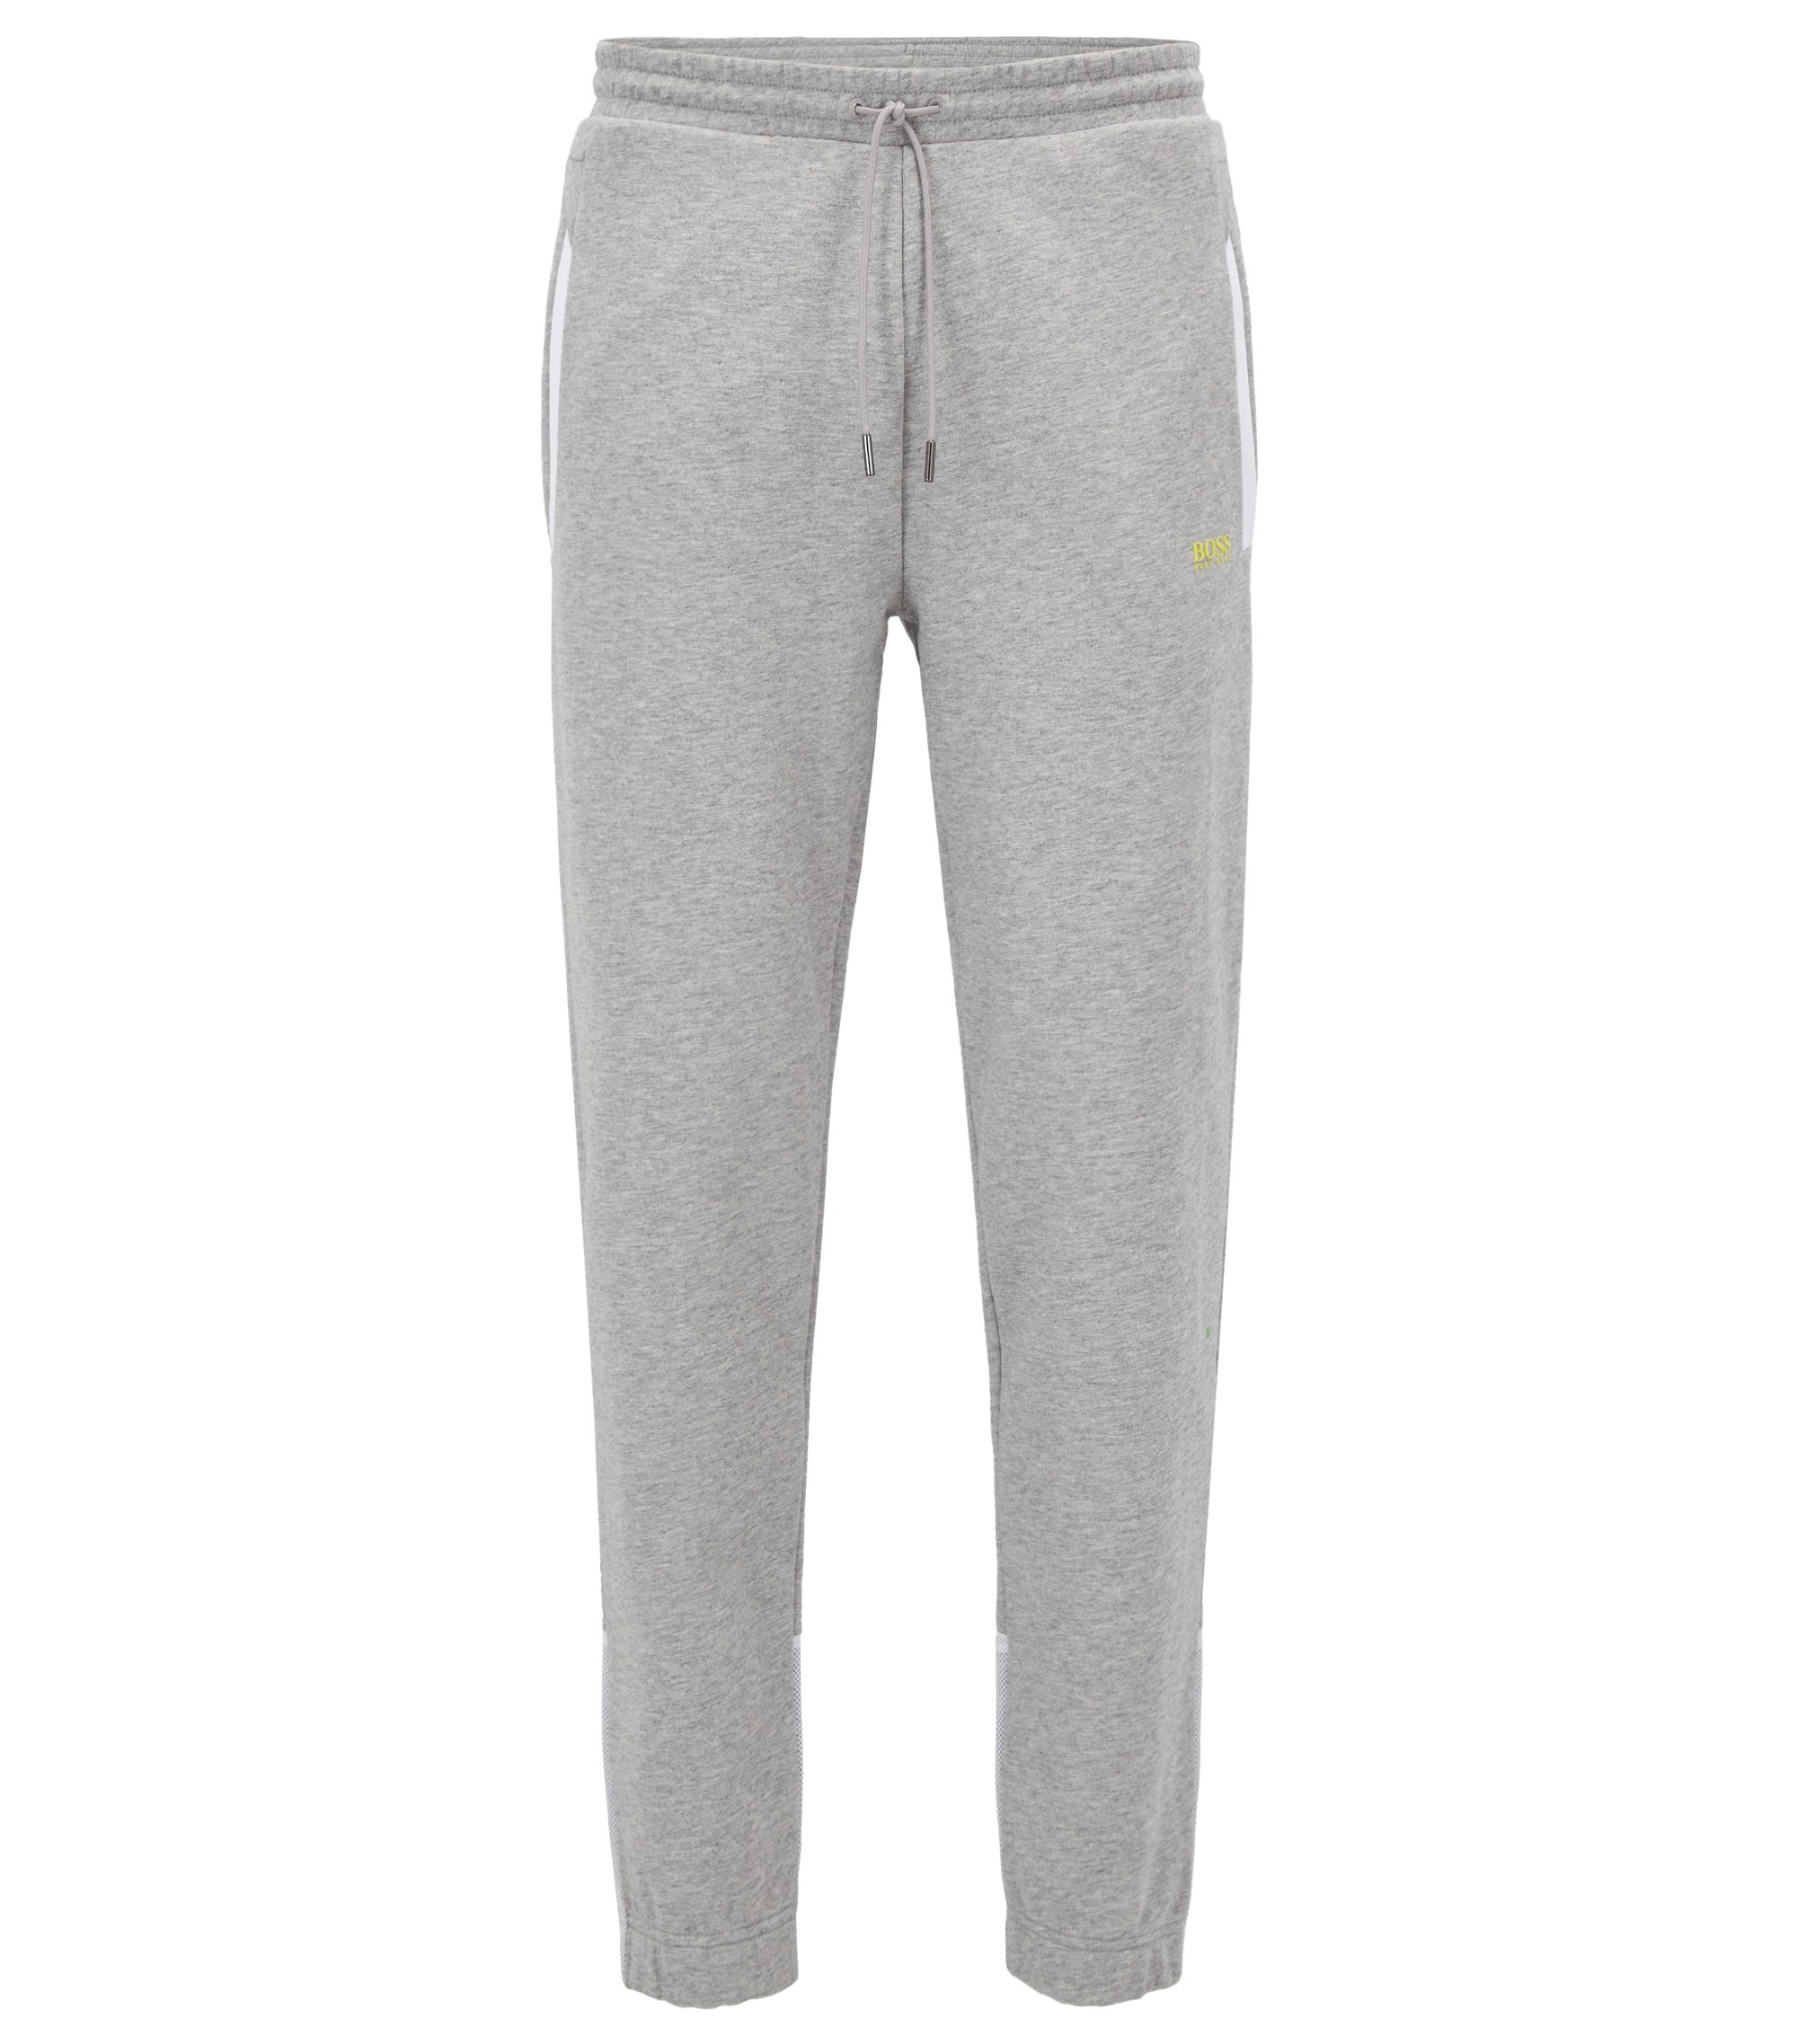 Cotton jogging bottoms with mesh panels, Light Grey